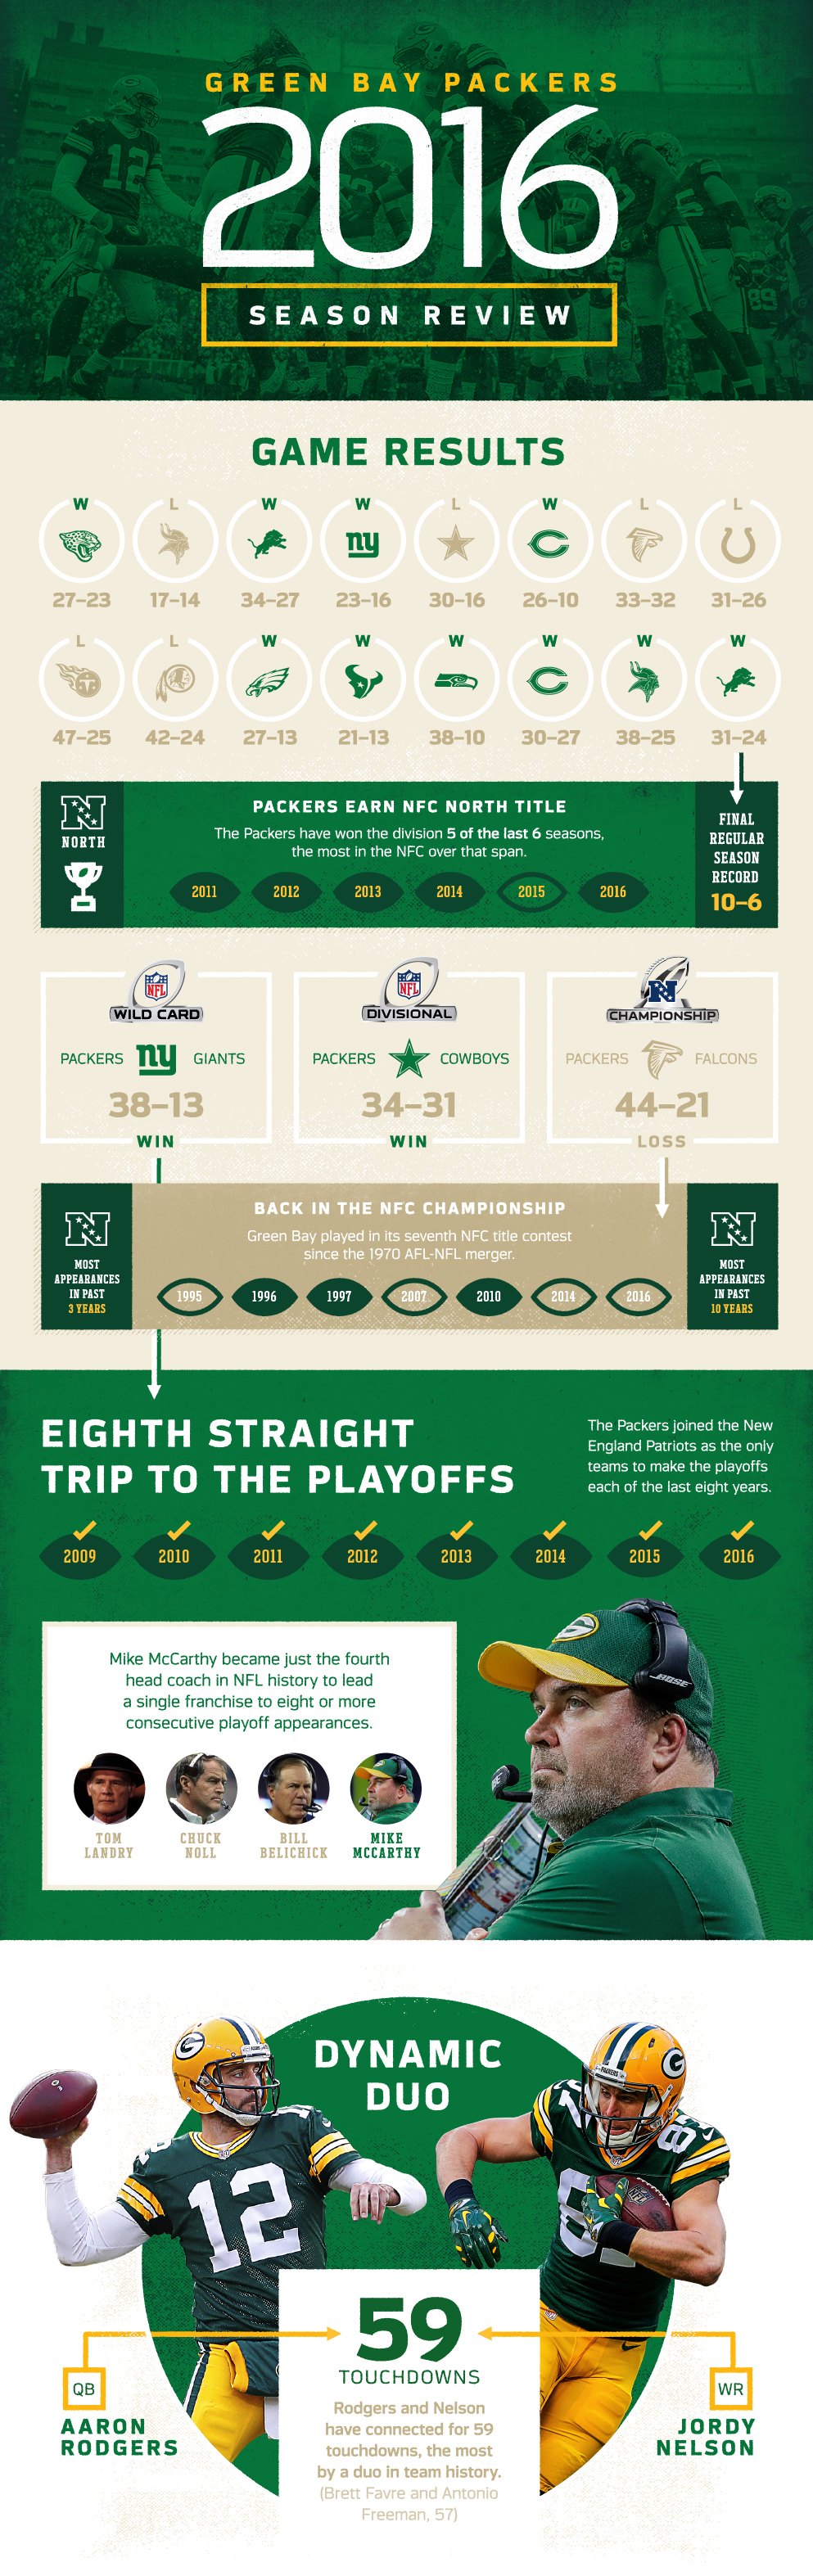 Packers' 2016 Season In Review